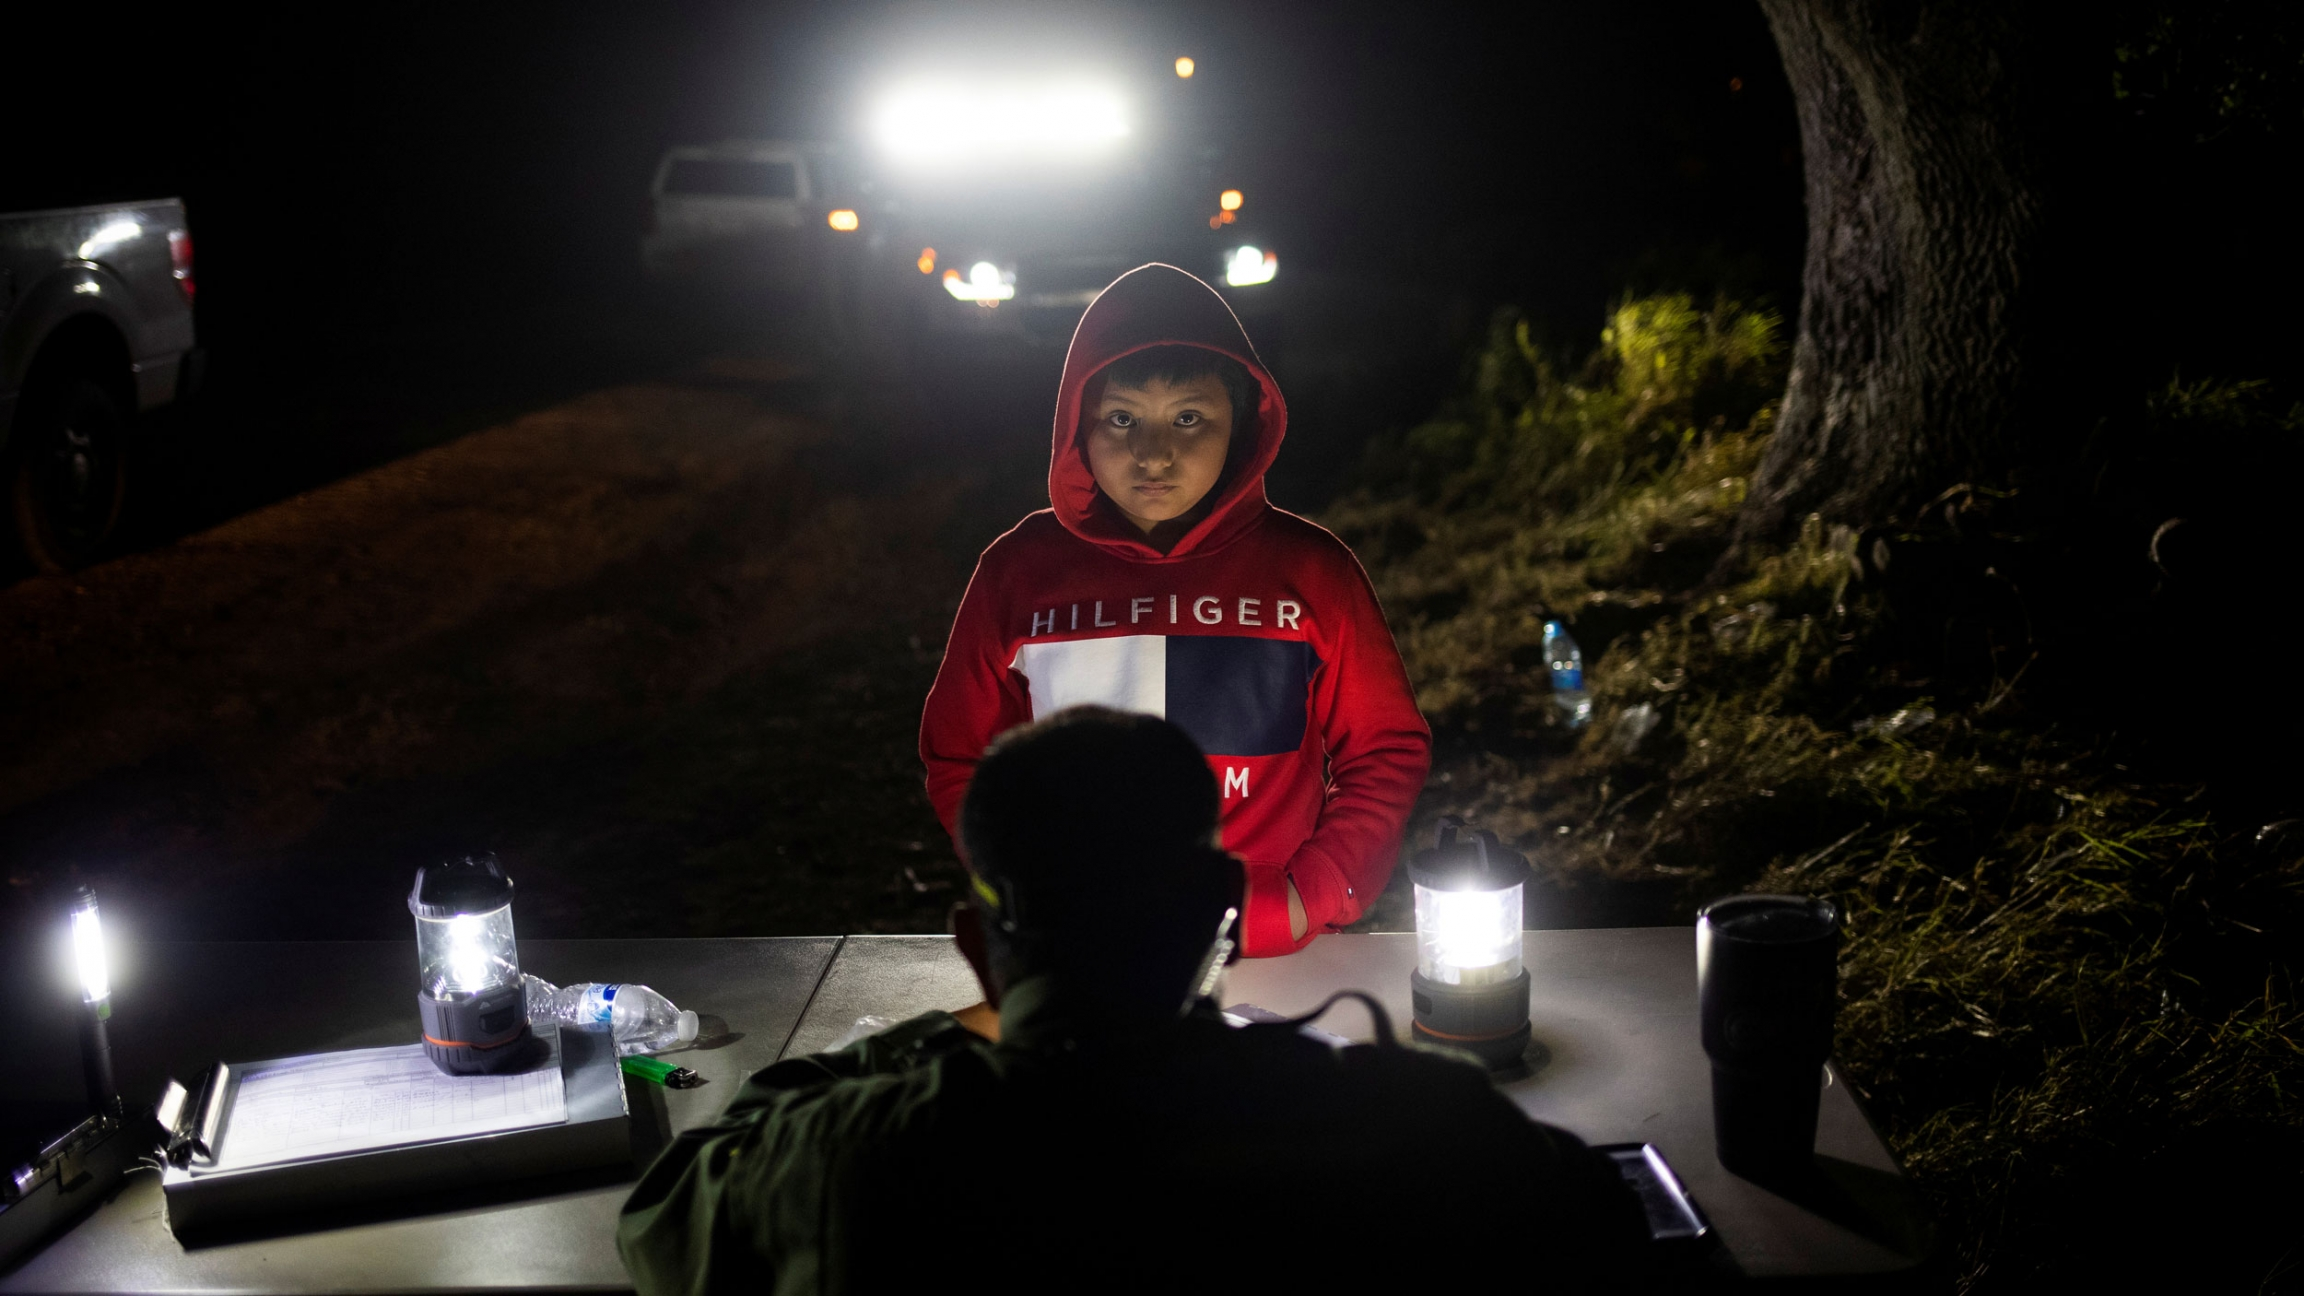 A young boy is shown wearing a red hooded sweatshirt and standing at a border patrol table.